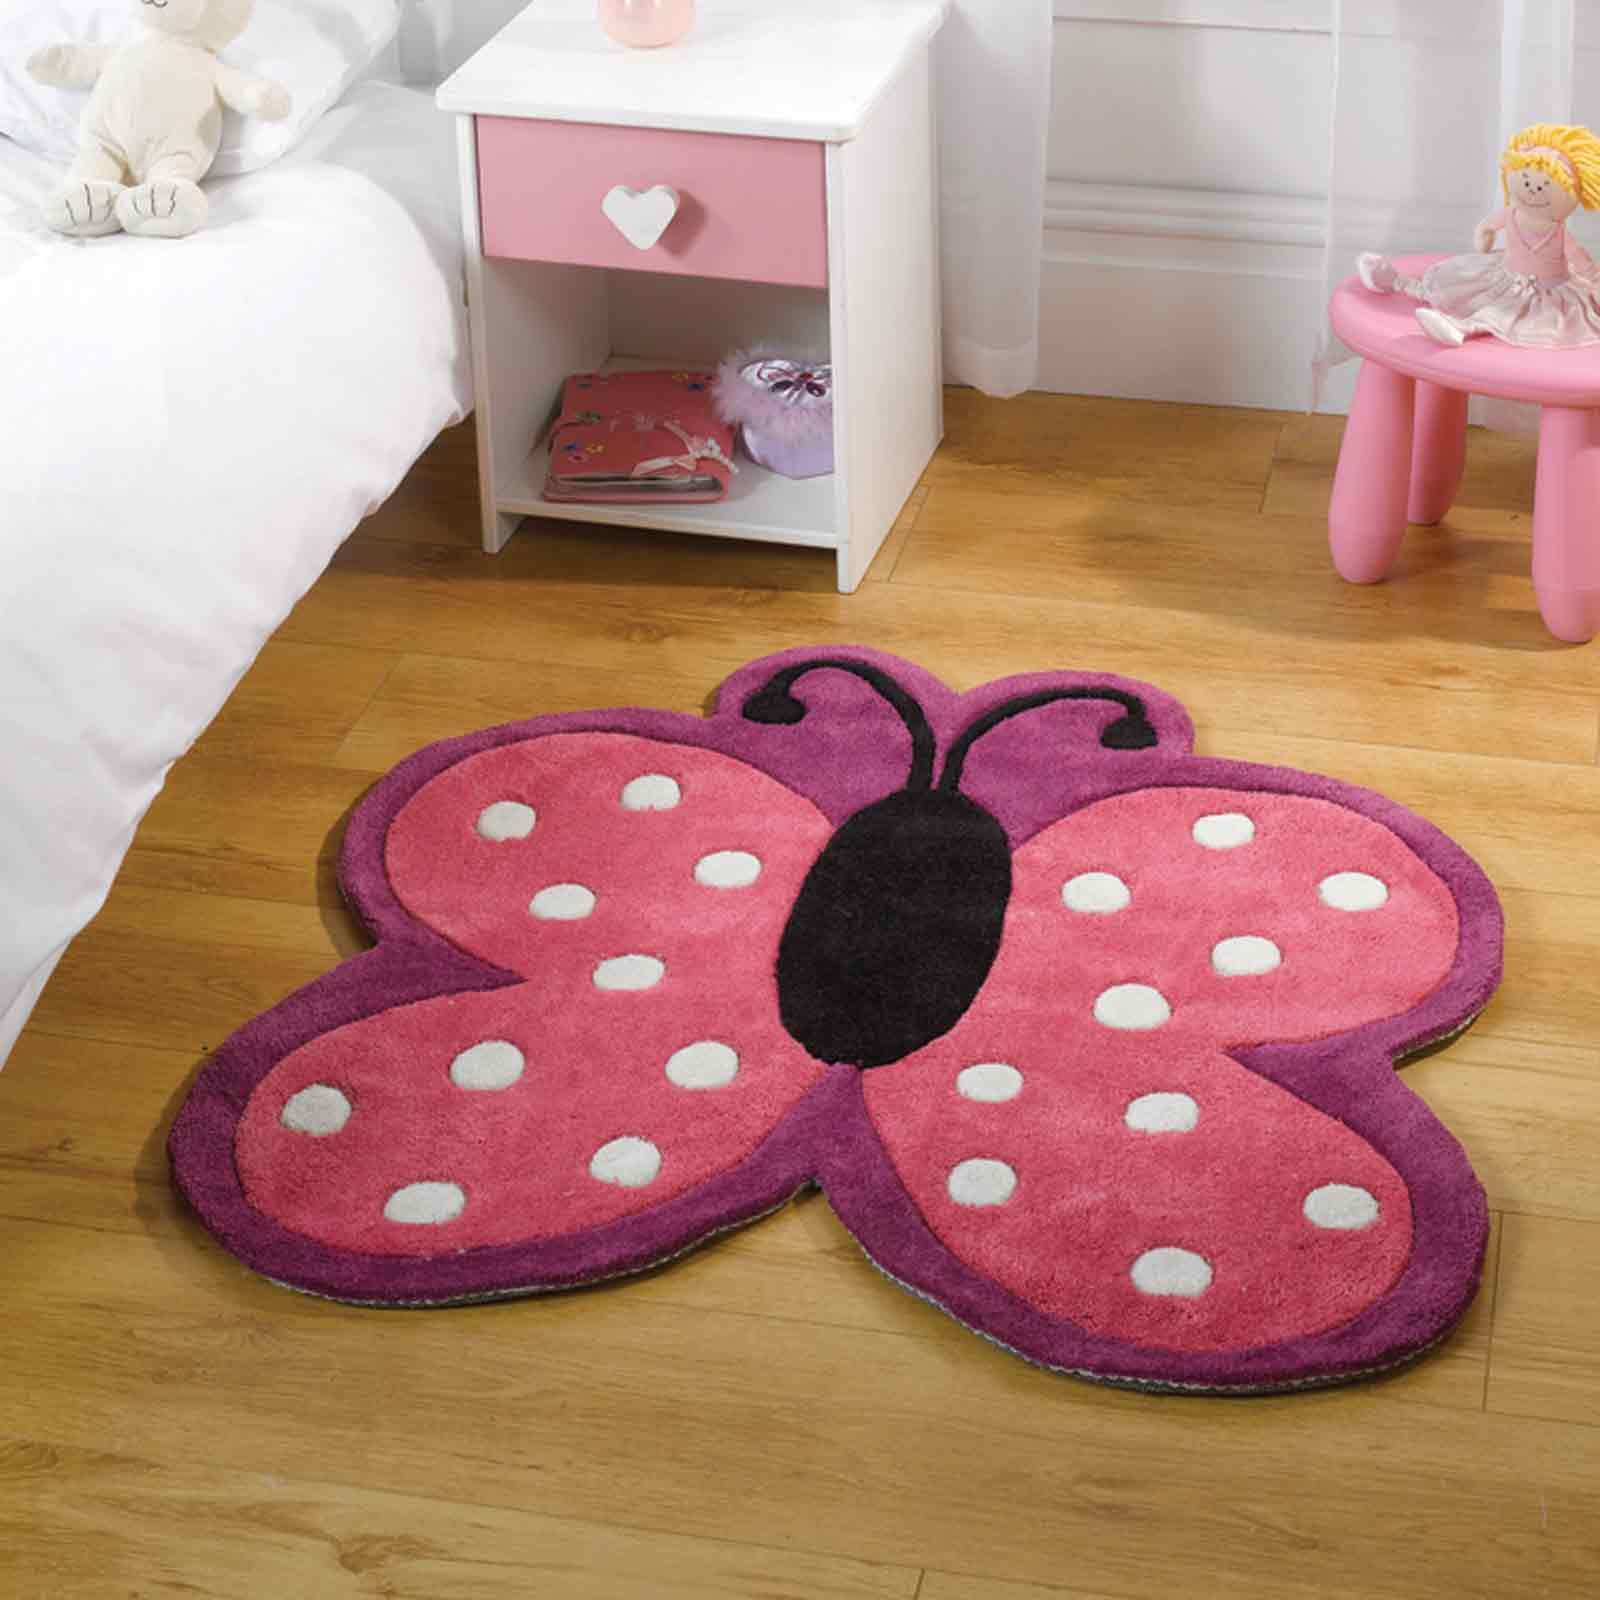 side activity australia rug free shipping floor crown girls pink kids pretty childrens motion area ka image rugs